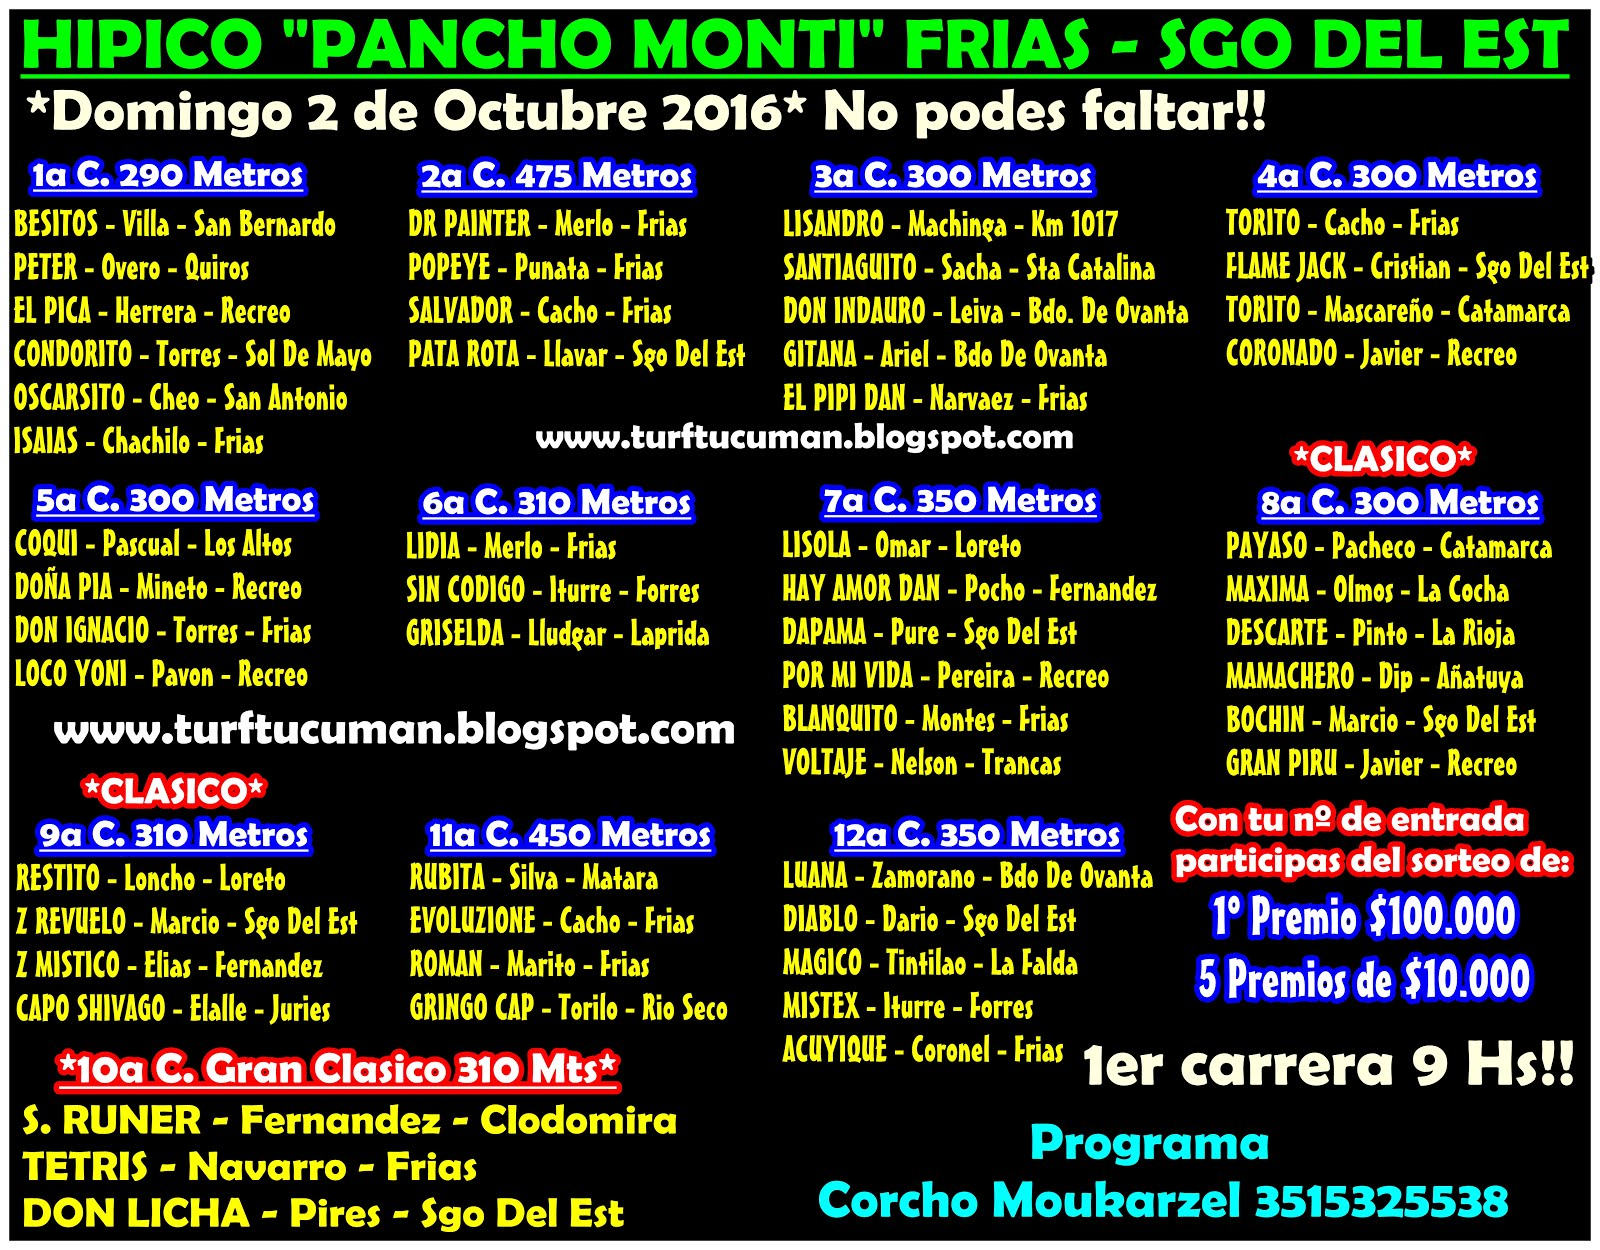 PROG FRIAS DGO 2 OCT 2016